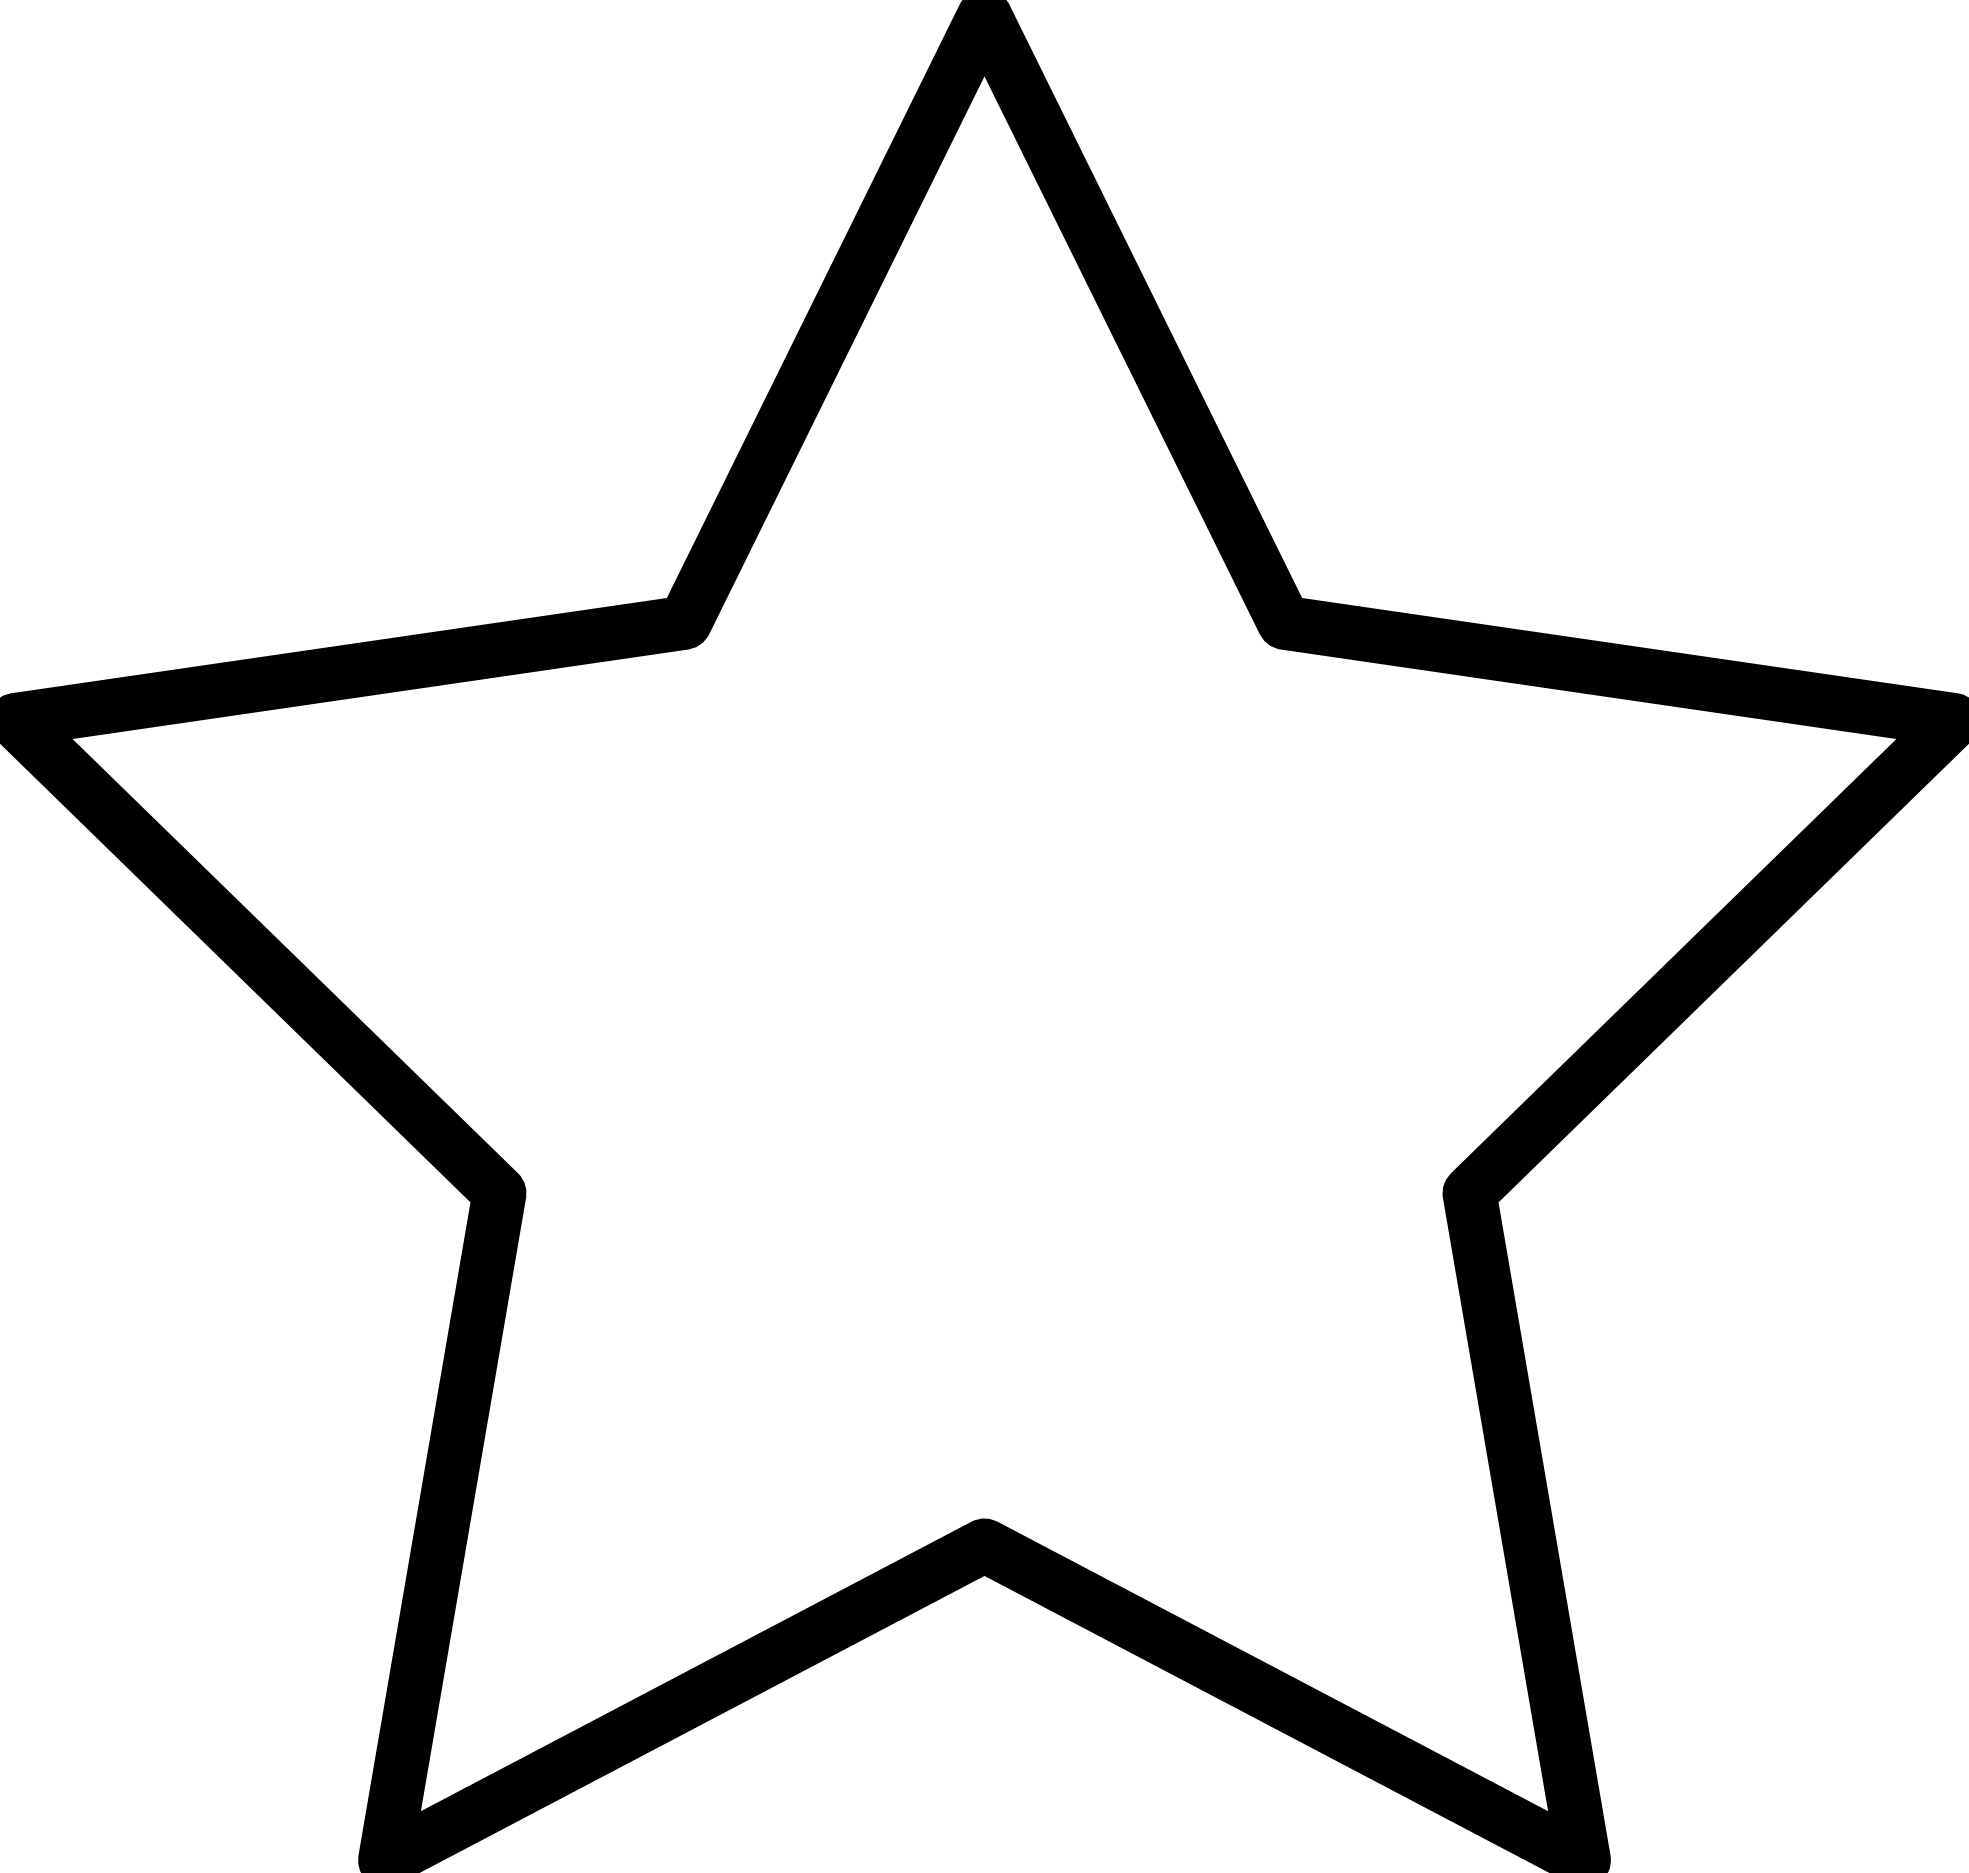 Star picture clipart vector library download star-clipart-black-and-white-4cbKBedei.png (1969×1873) | kids yarn ... vector library download